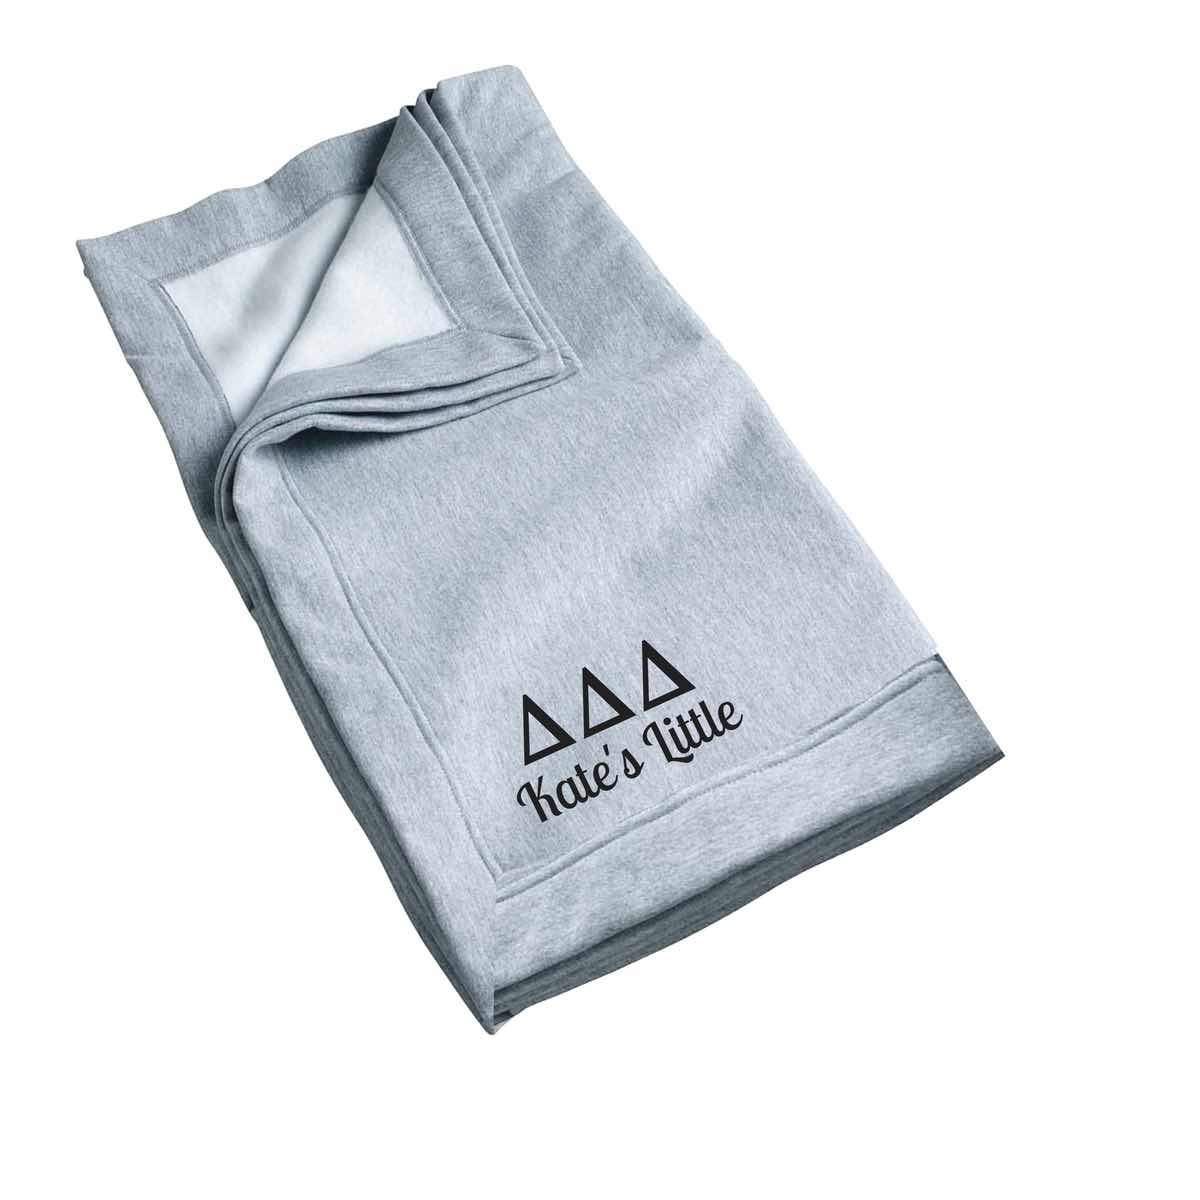 Tri Delta Little Blanket, Recommended One Size Fits All Personalized Big Little Gift